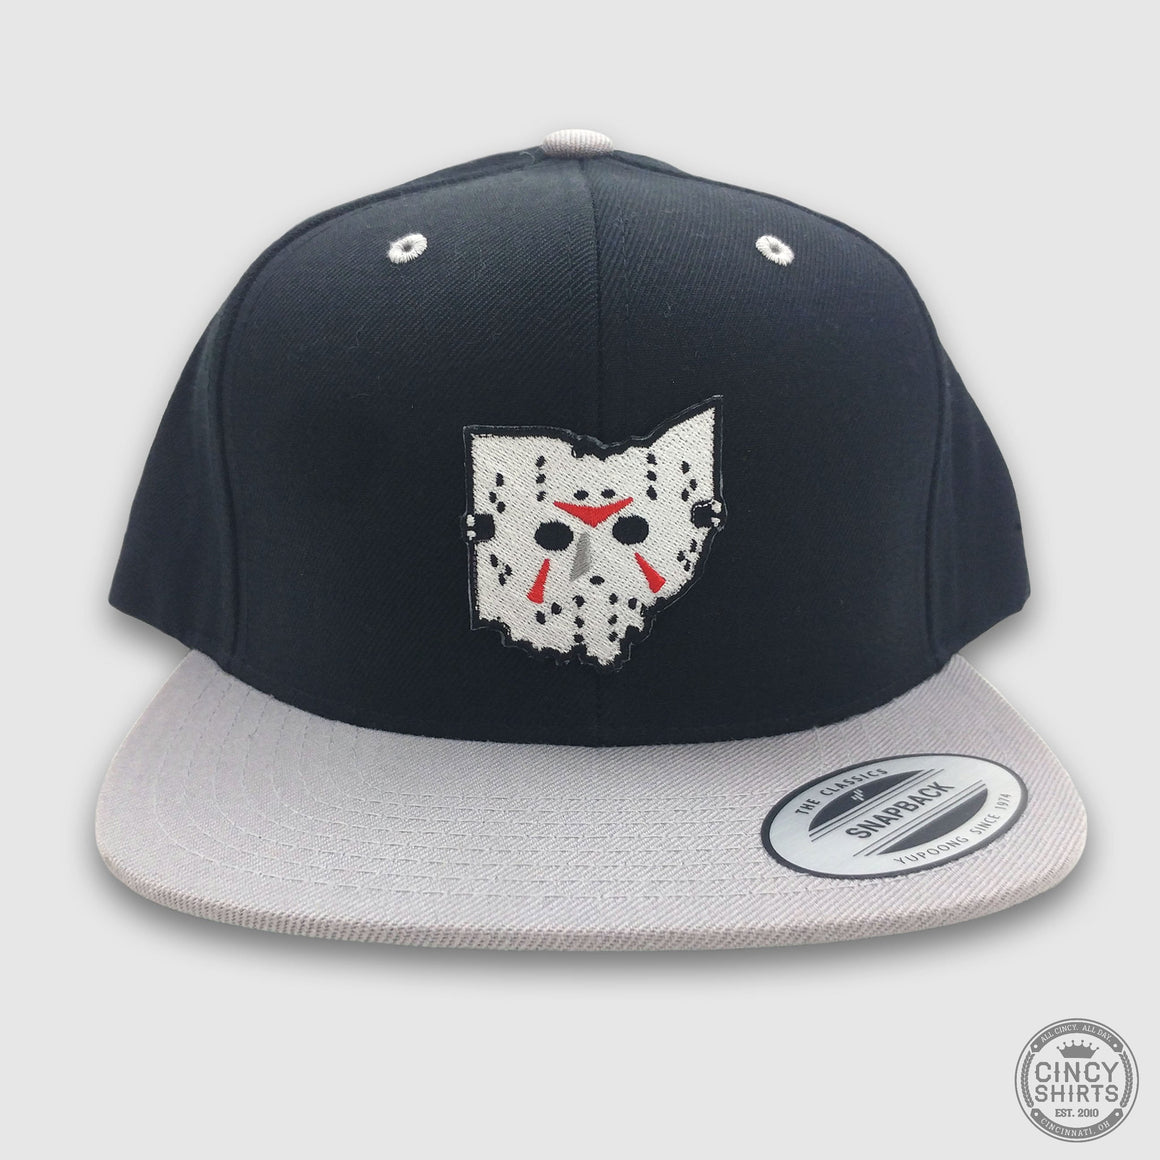 Camp Killer Snapback Hat - Cincy Shirts